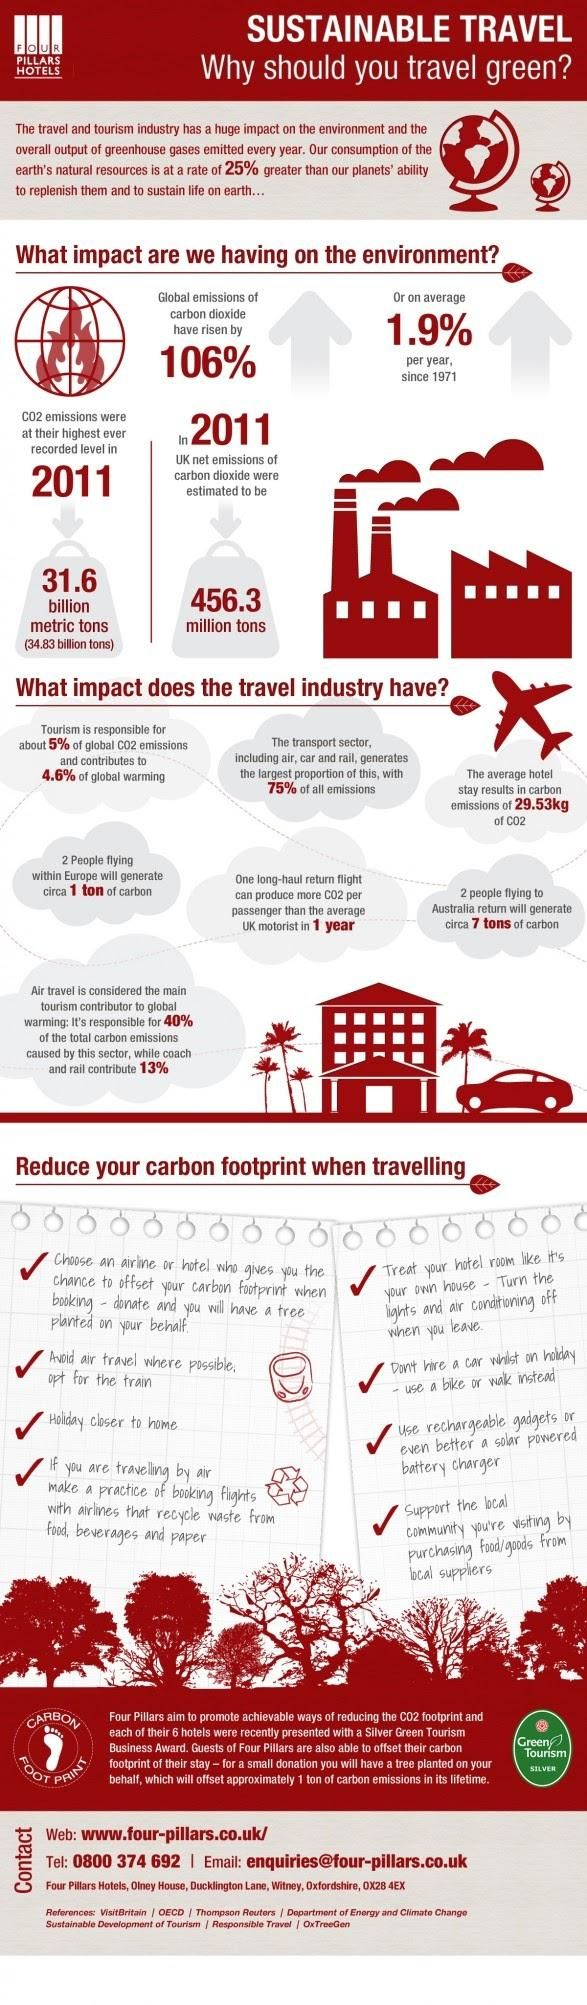 Sustainable Travel - Why should you travel green [Infographic]